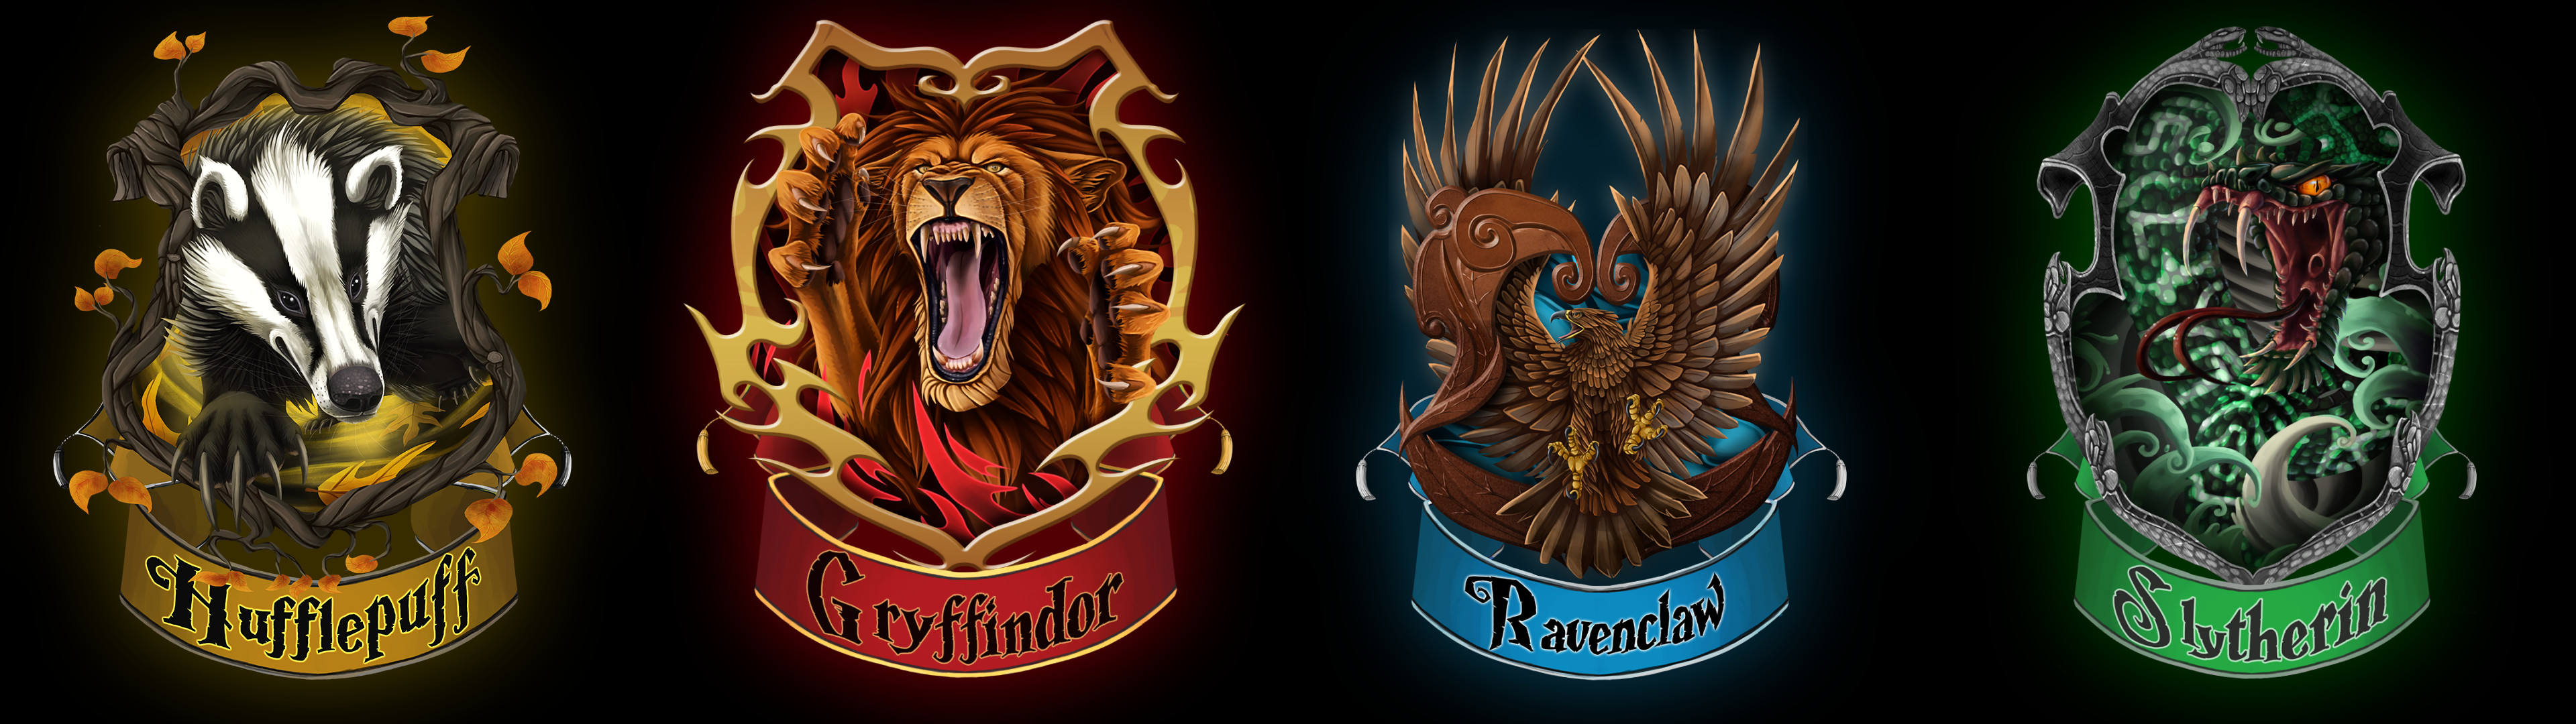 3840x1080 In Which Hogwarts houses your favs are ? - Random - OneHallyu